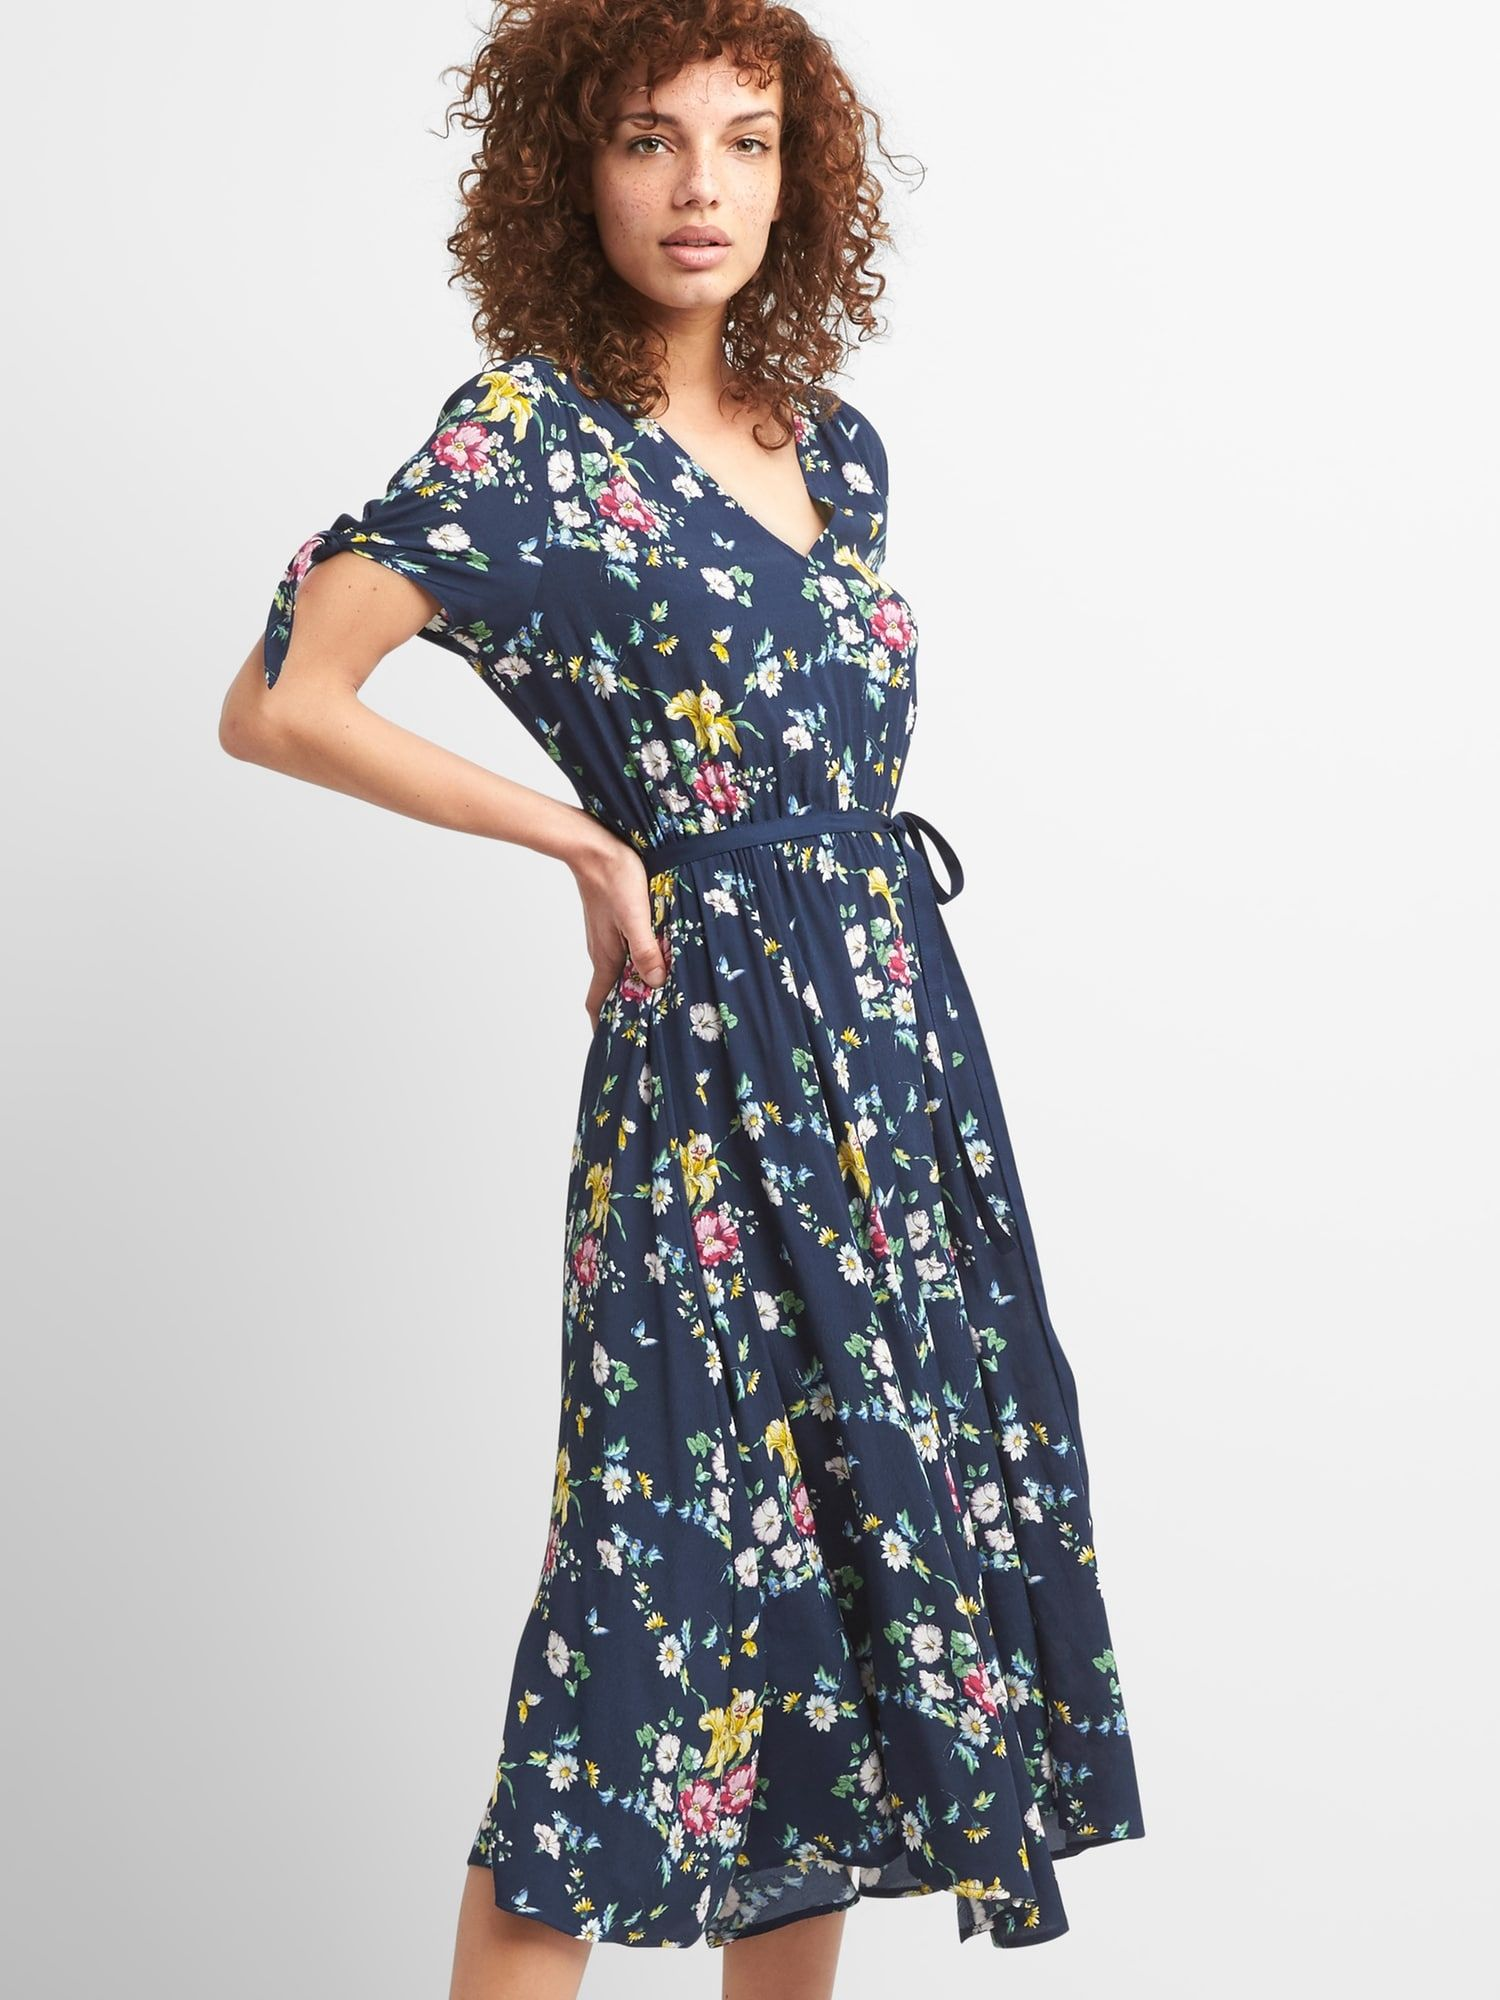 aab351aeb733 Sarah Jessica Parker for Gap, Navy Floral Midi Dress | Wearables ...